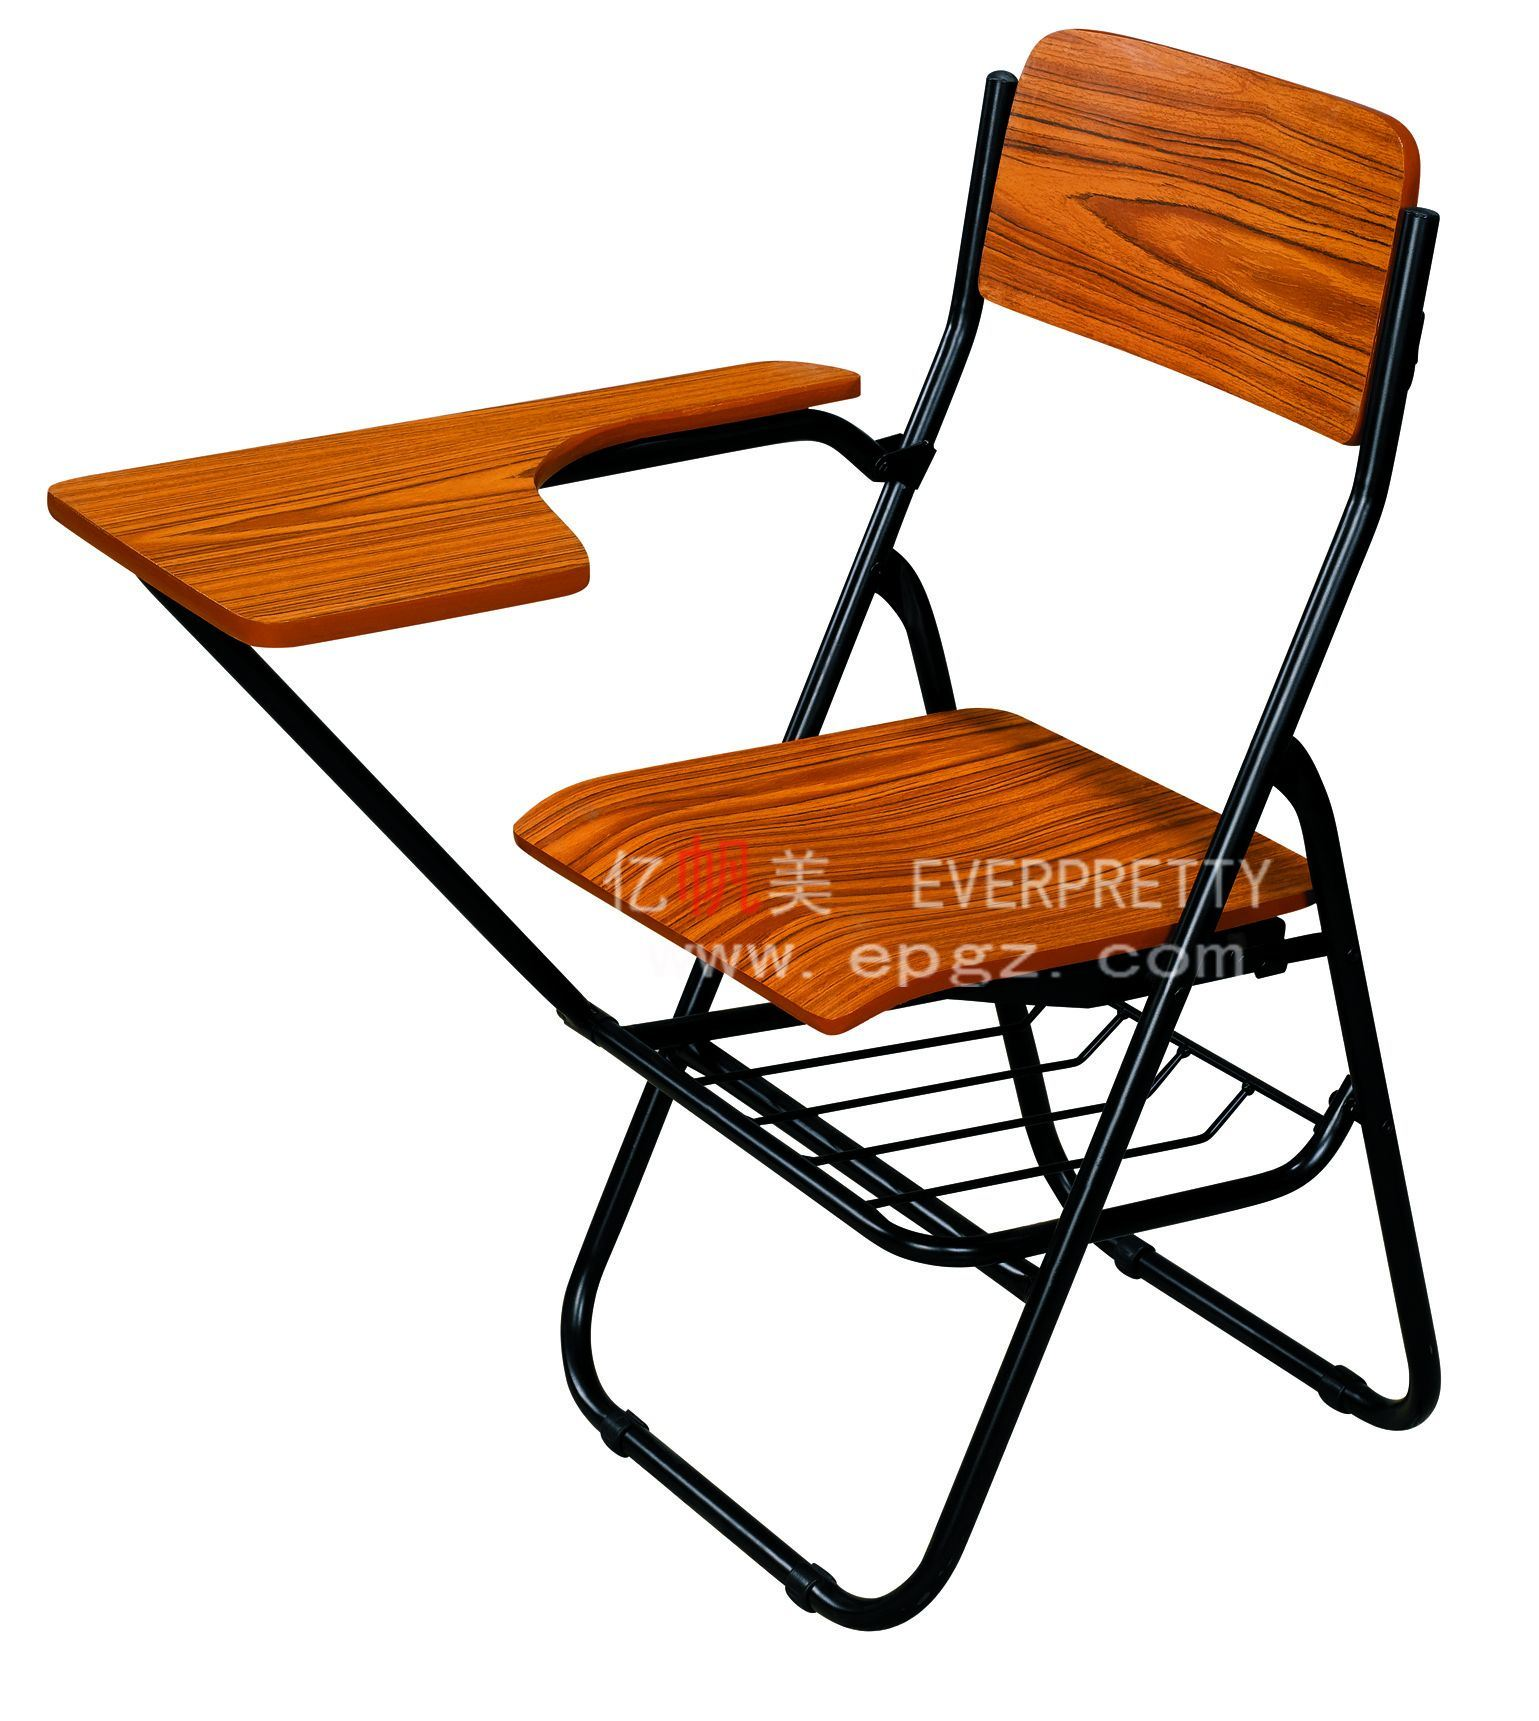 Folding Wooden Chairs Hot Item Adults Education Furniture Folding Wooden Training Chair With Writing Pad